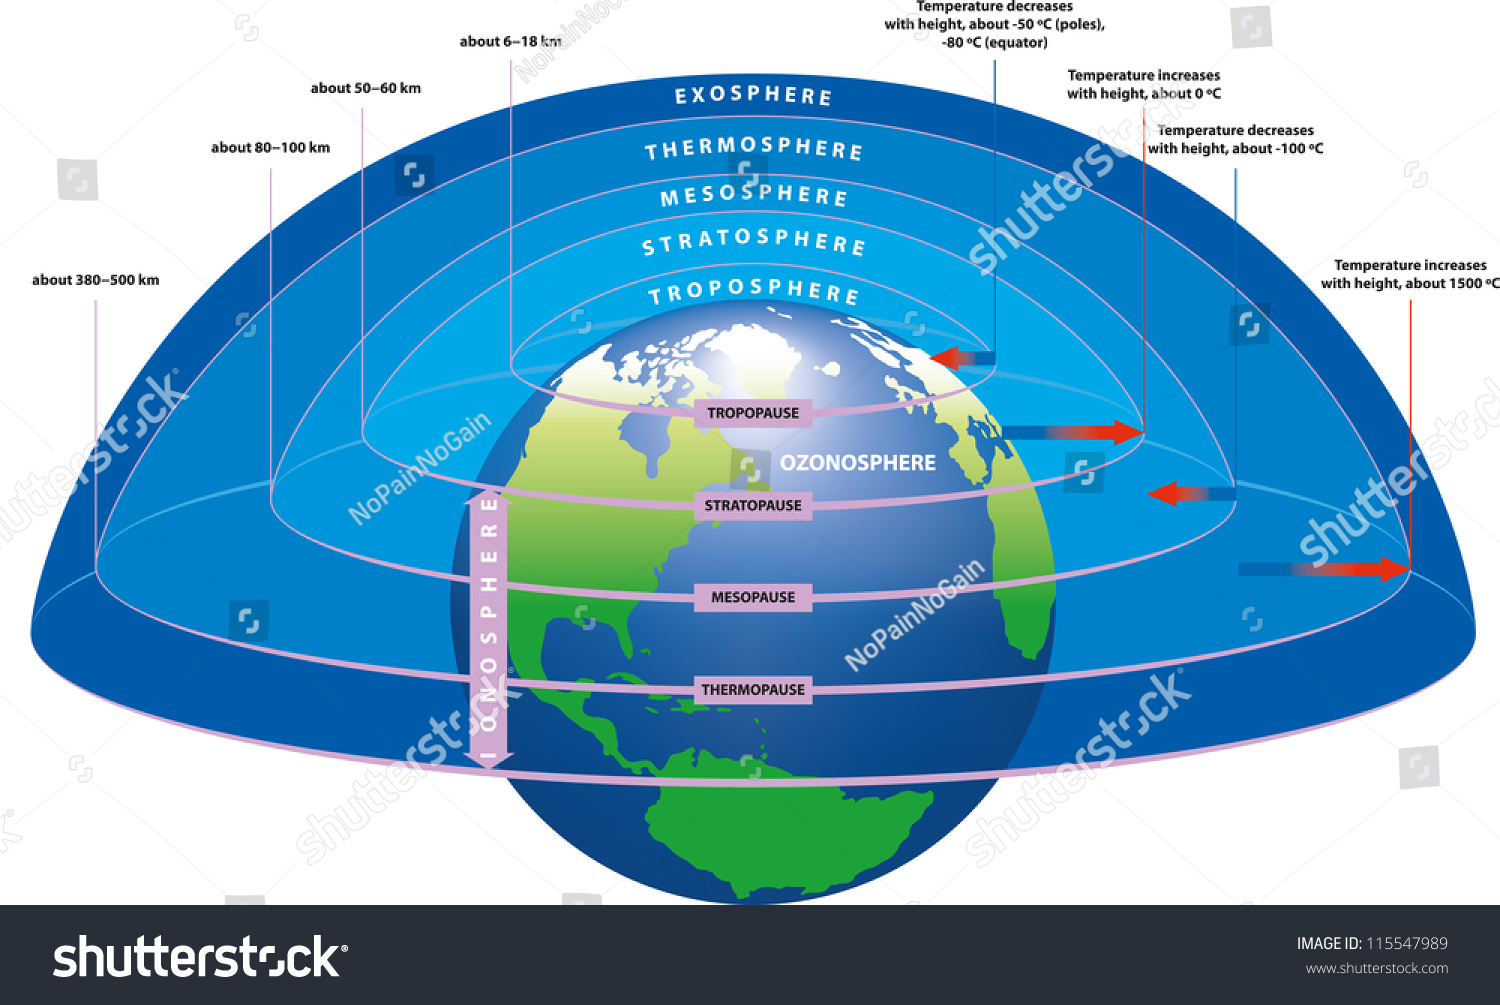 Main layers earths atmosphere stock vector 115547989 shutterstock the main layers of earths atmosphere pooptronica Image collections